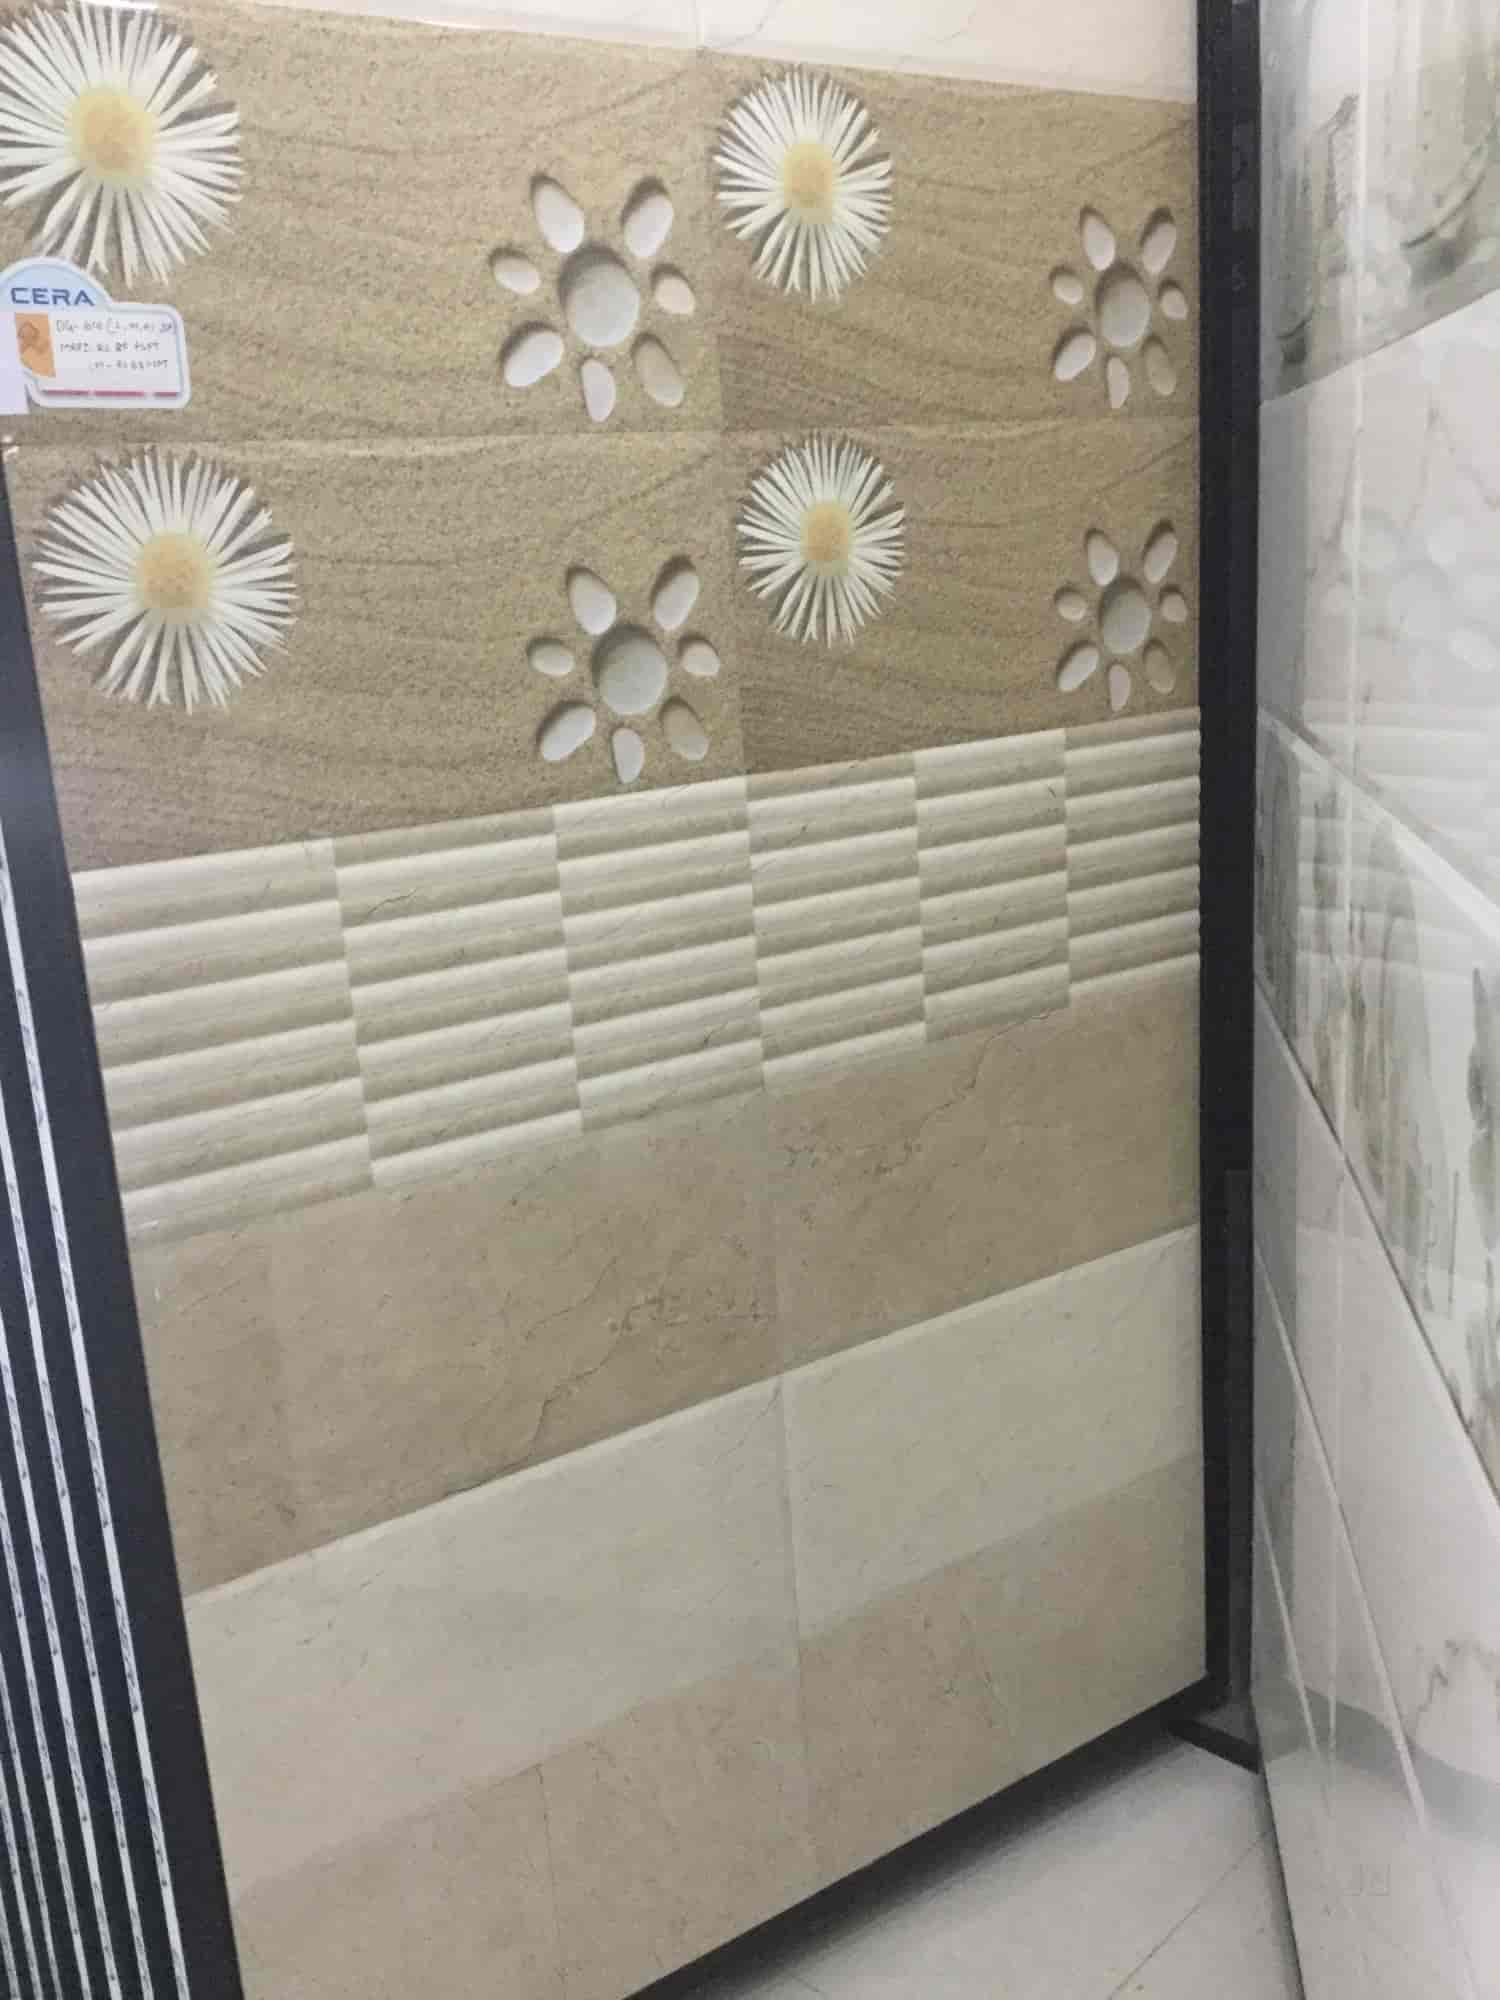 Bathroom Tile Gallery Cera The Tile Gallery Kphb Colony Tile Dealers In Hyderabad